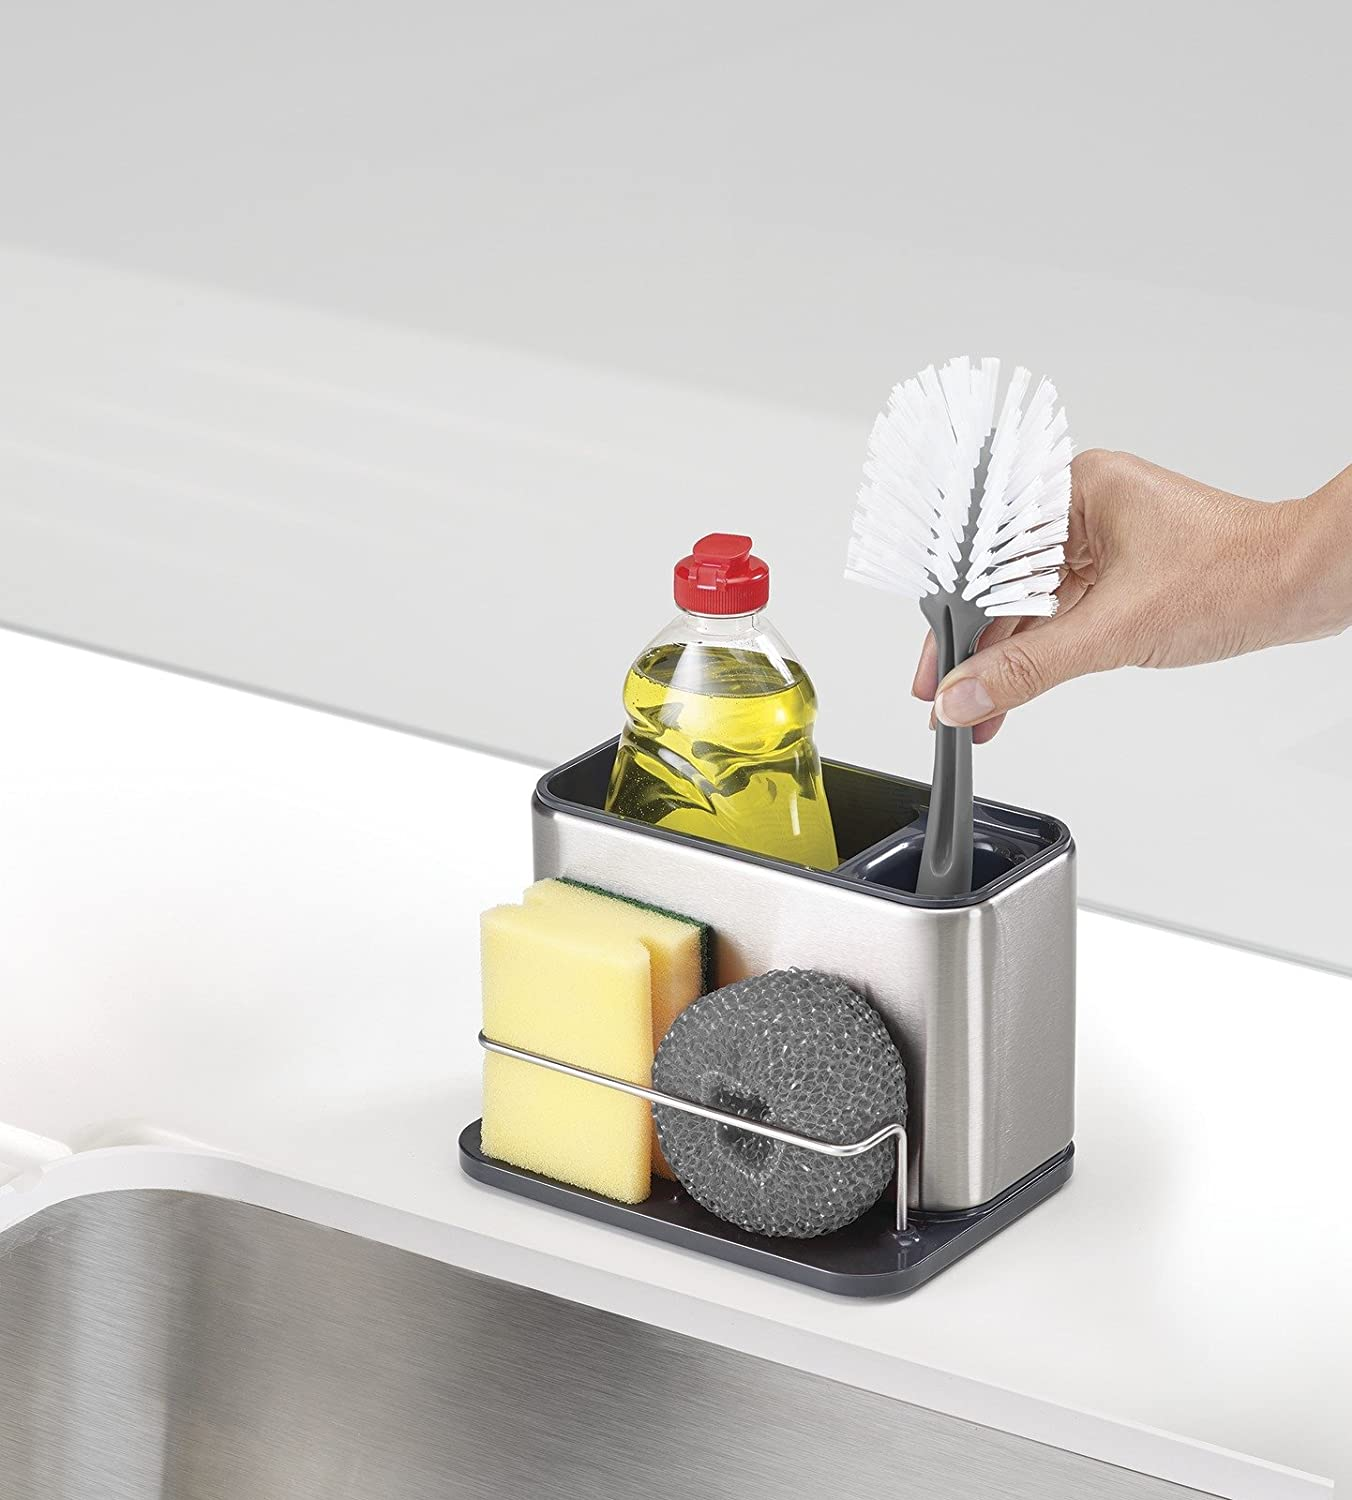 Joseph Joseph 85133 Surface Sink Caddy Stainless Steel Sponge Holder Organizer Tidy Drains Water for Kitchen Small Silver